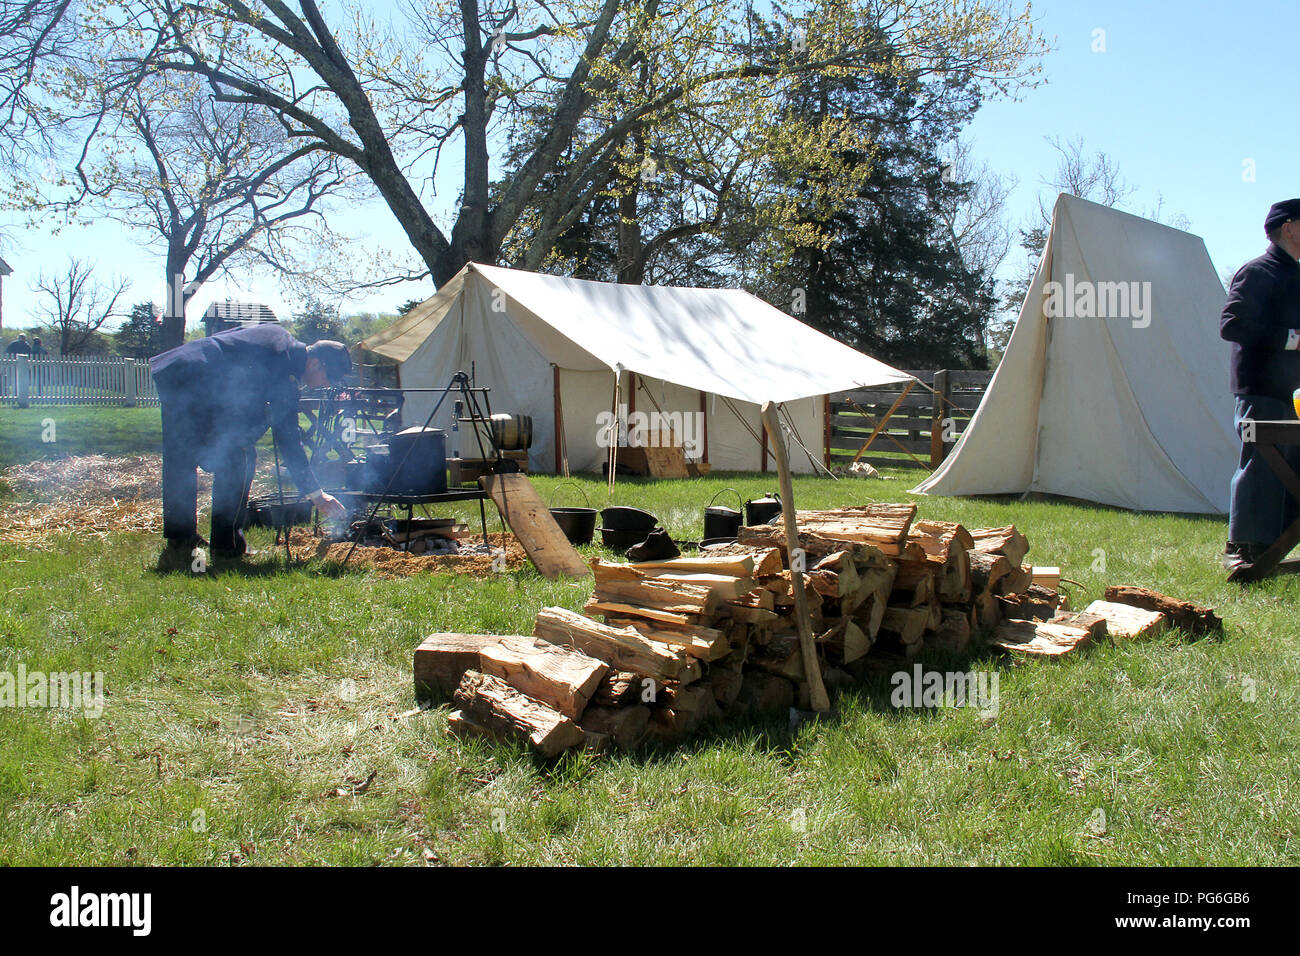 The Confederate Army camping during the American Civil War